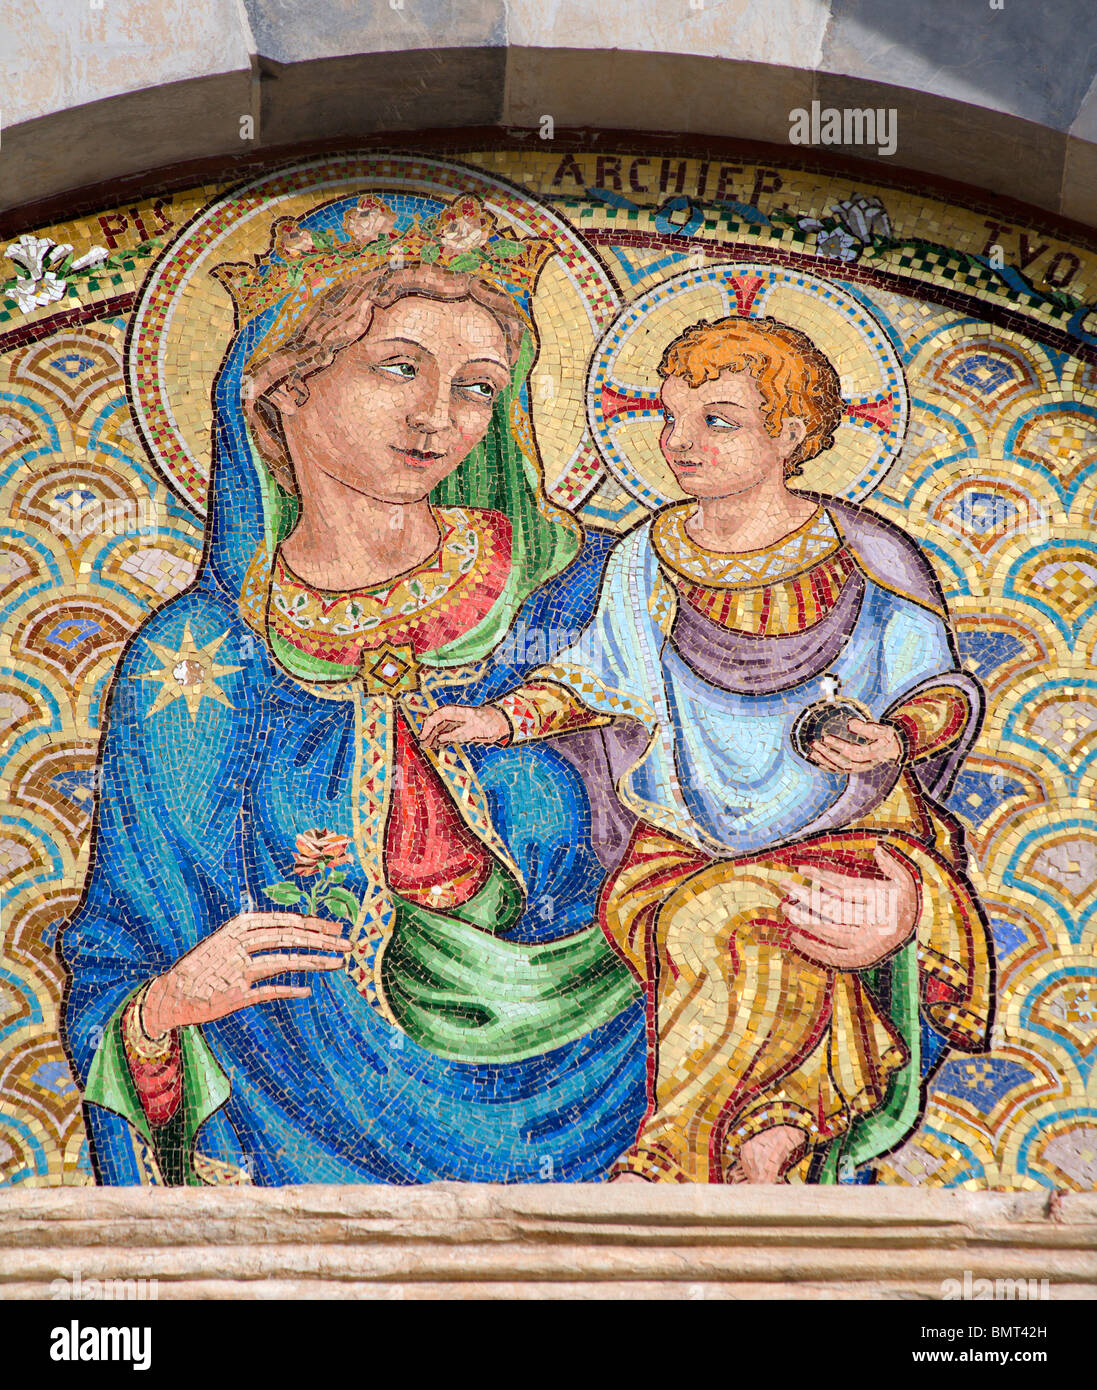 Pisa - mosaic of holy mary with the Jesus - Chiesa e convento di San Torpe - Stock Image